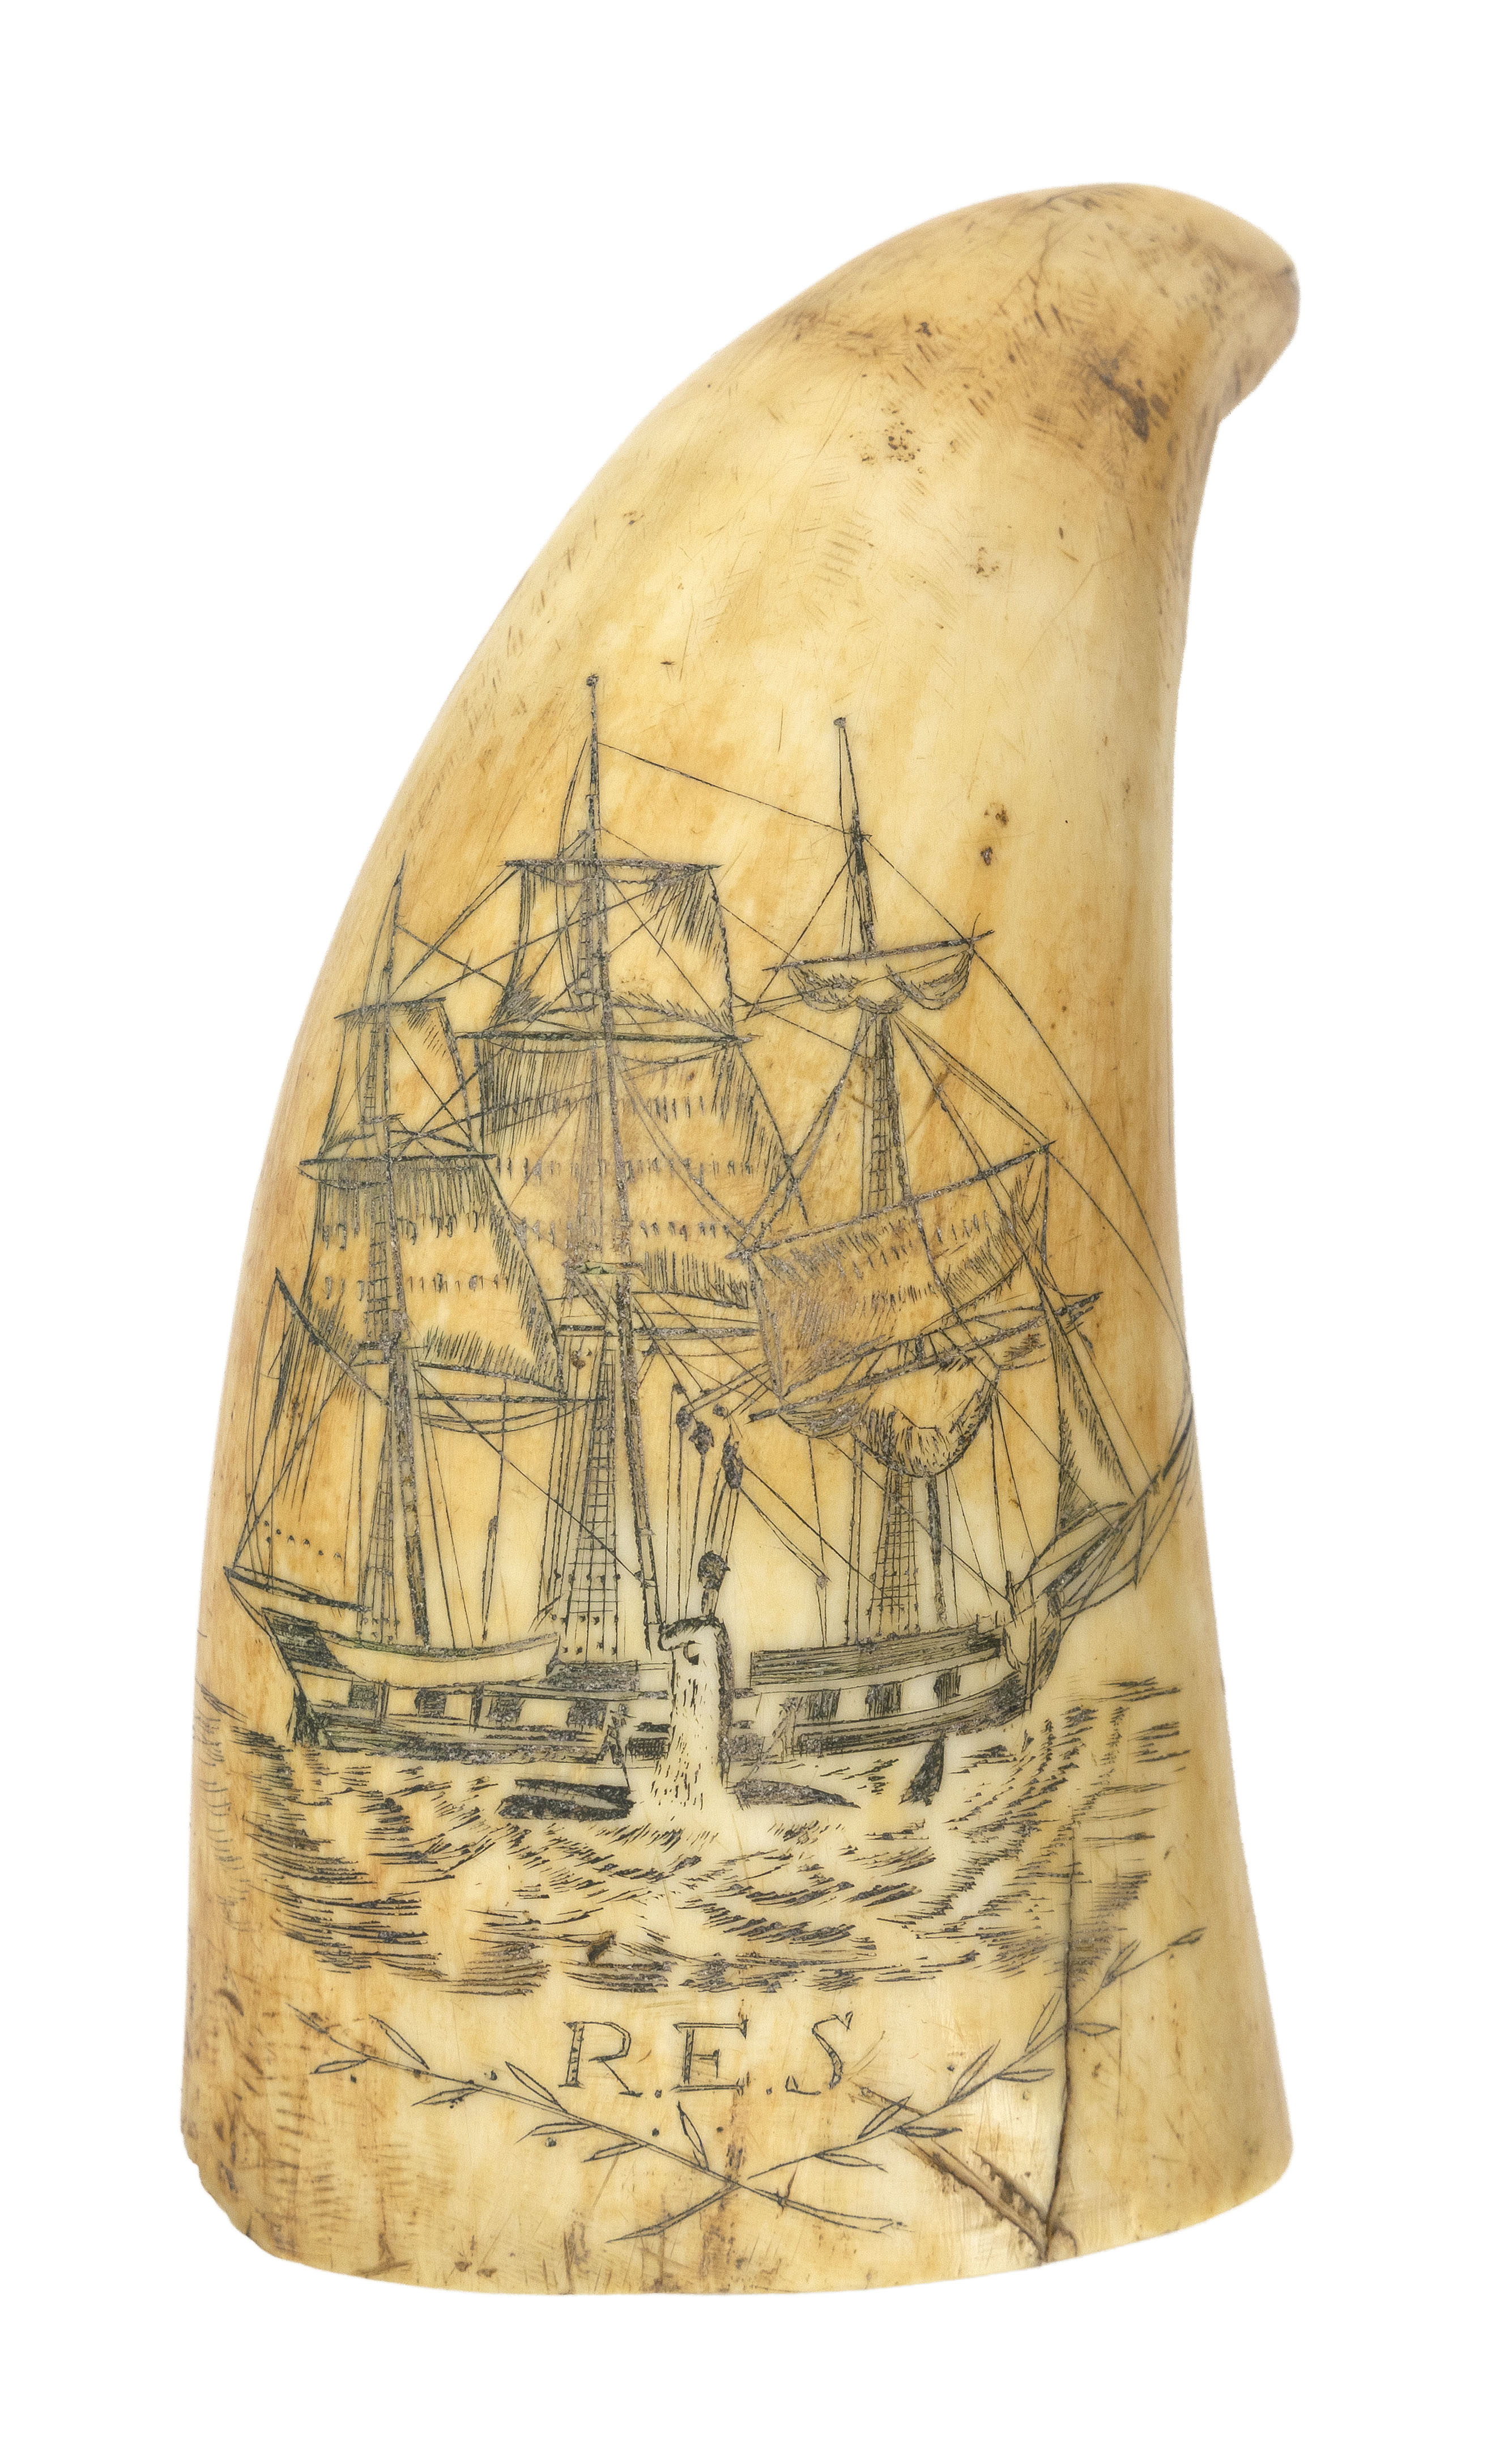 SCRIMSHAW WHALE'S TOOTH WITH ACTIVE WHALING SCENE Mid-19th Century Length 4.25